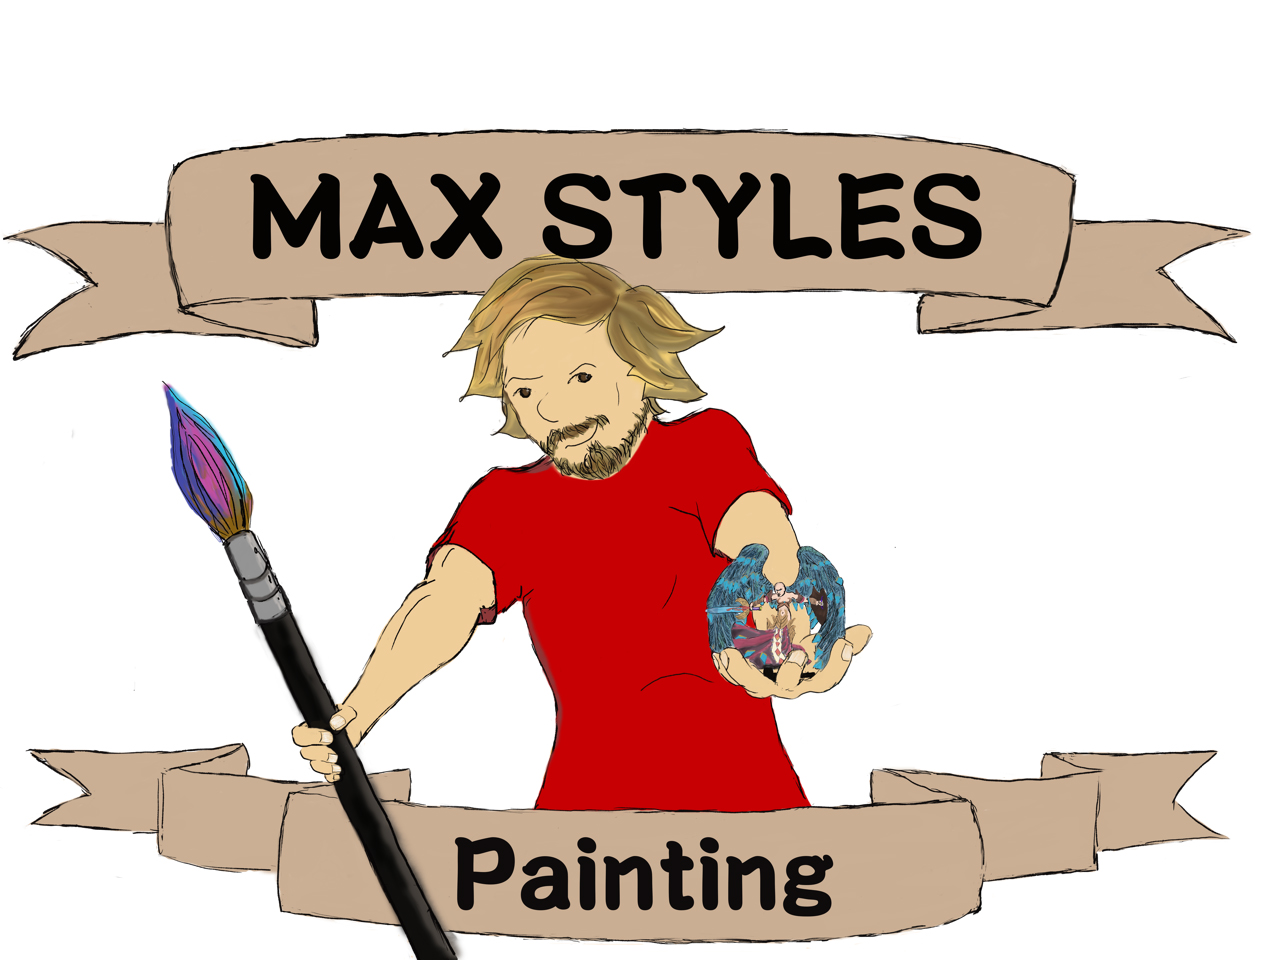 Max Styles Painting